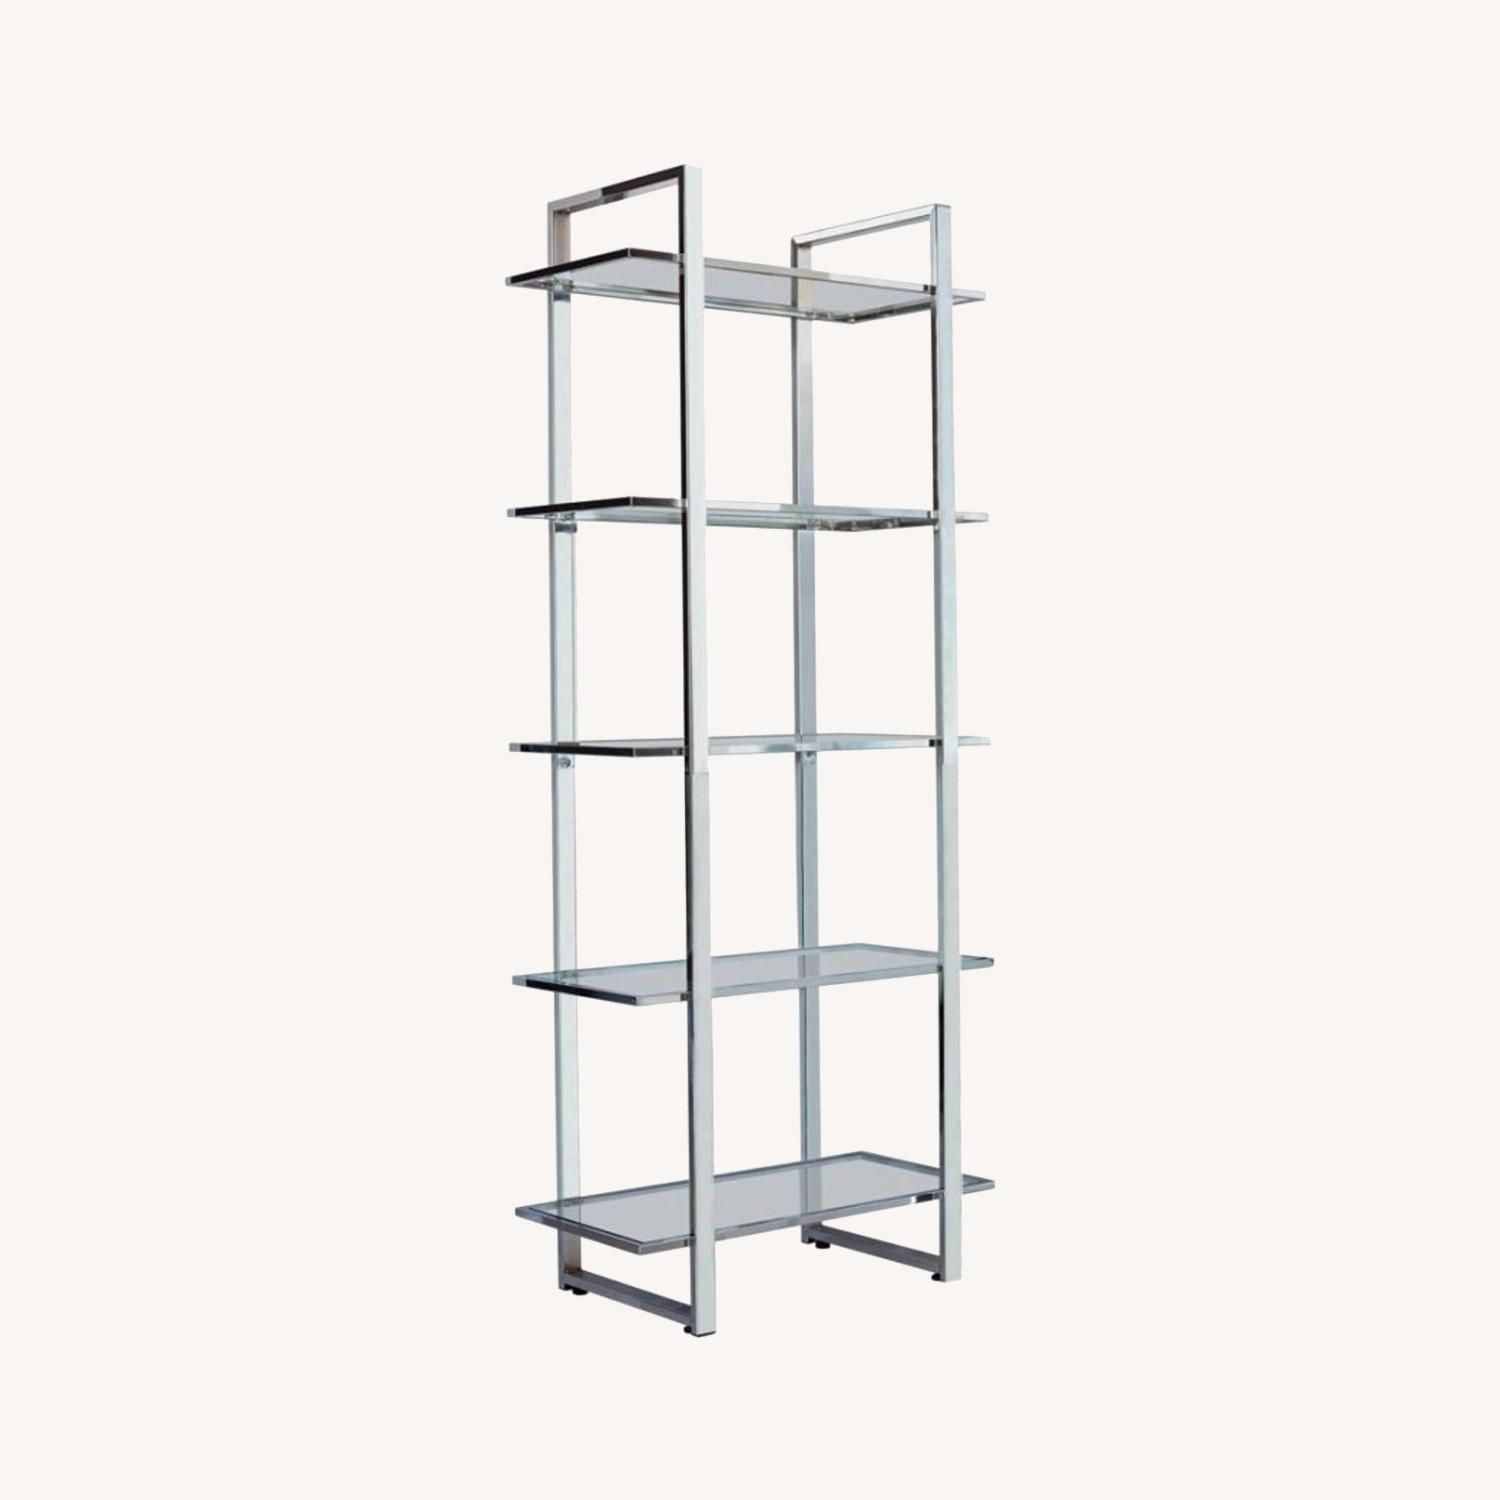 Bookcase In Chrome Finish W/ 5-Tier Shelves - image-3